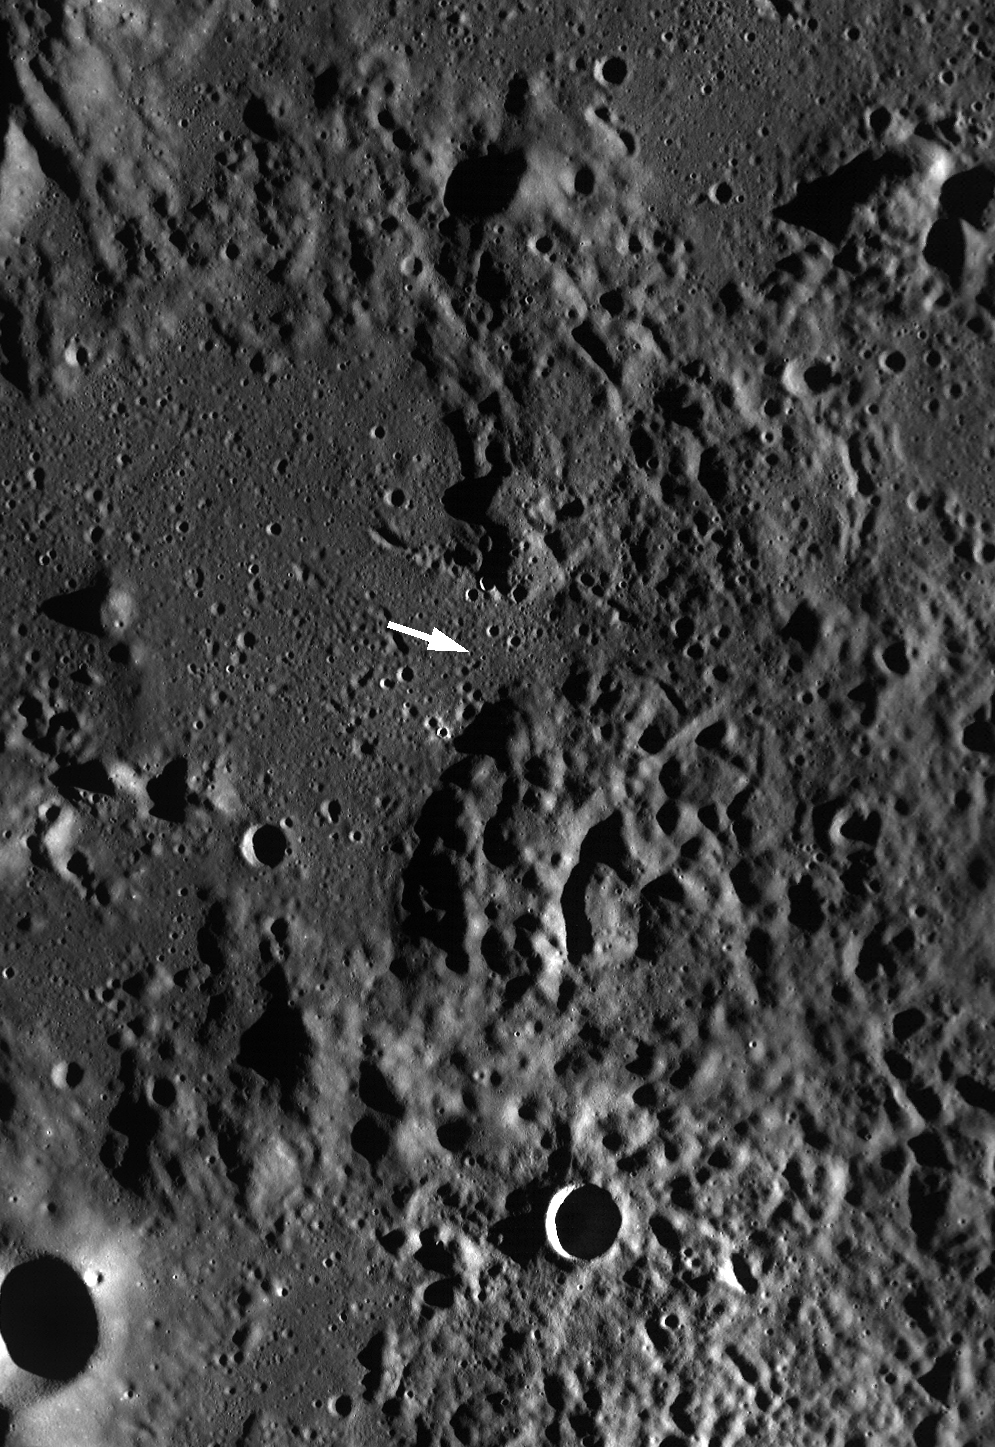 Apollo 16: Arrow Points the Way